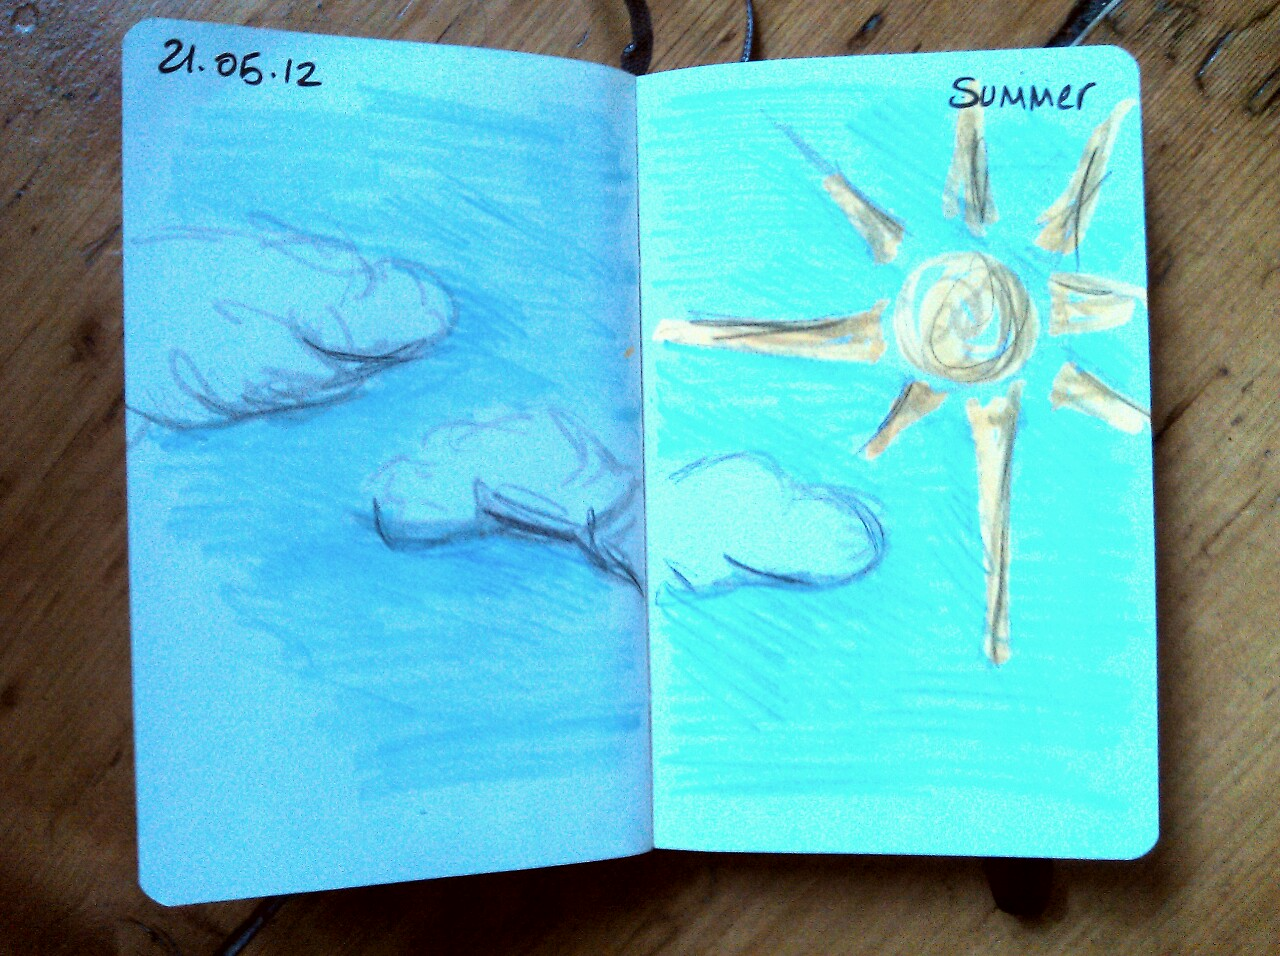 365 drawings later … day 111 … summer (here's hoping!)